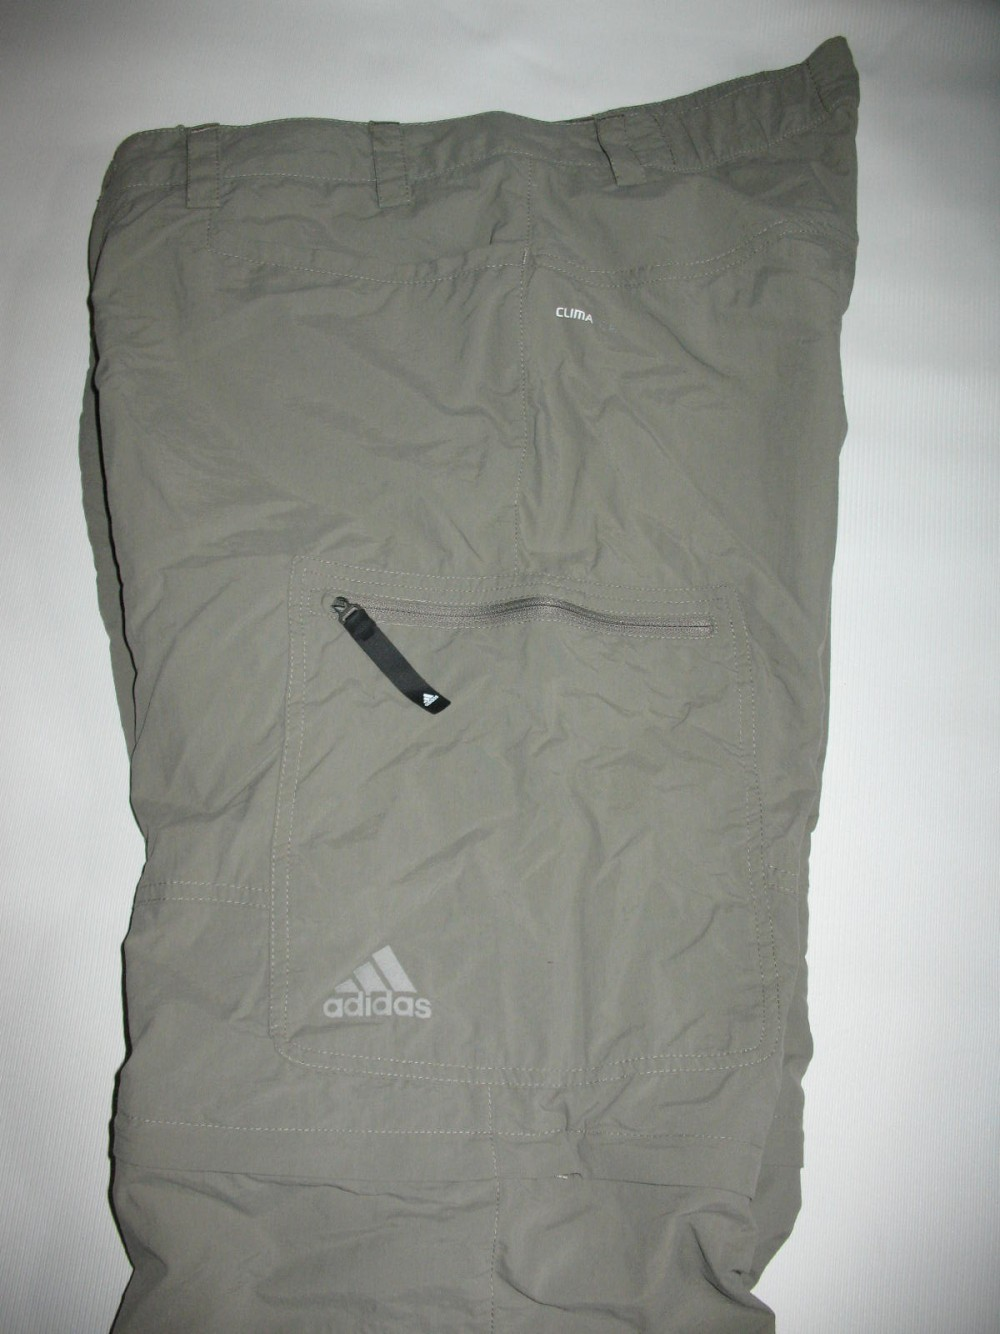 Штаны ADIDAS ht hike 2in1 outdoor pants (размер 50/L) - 13